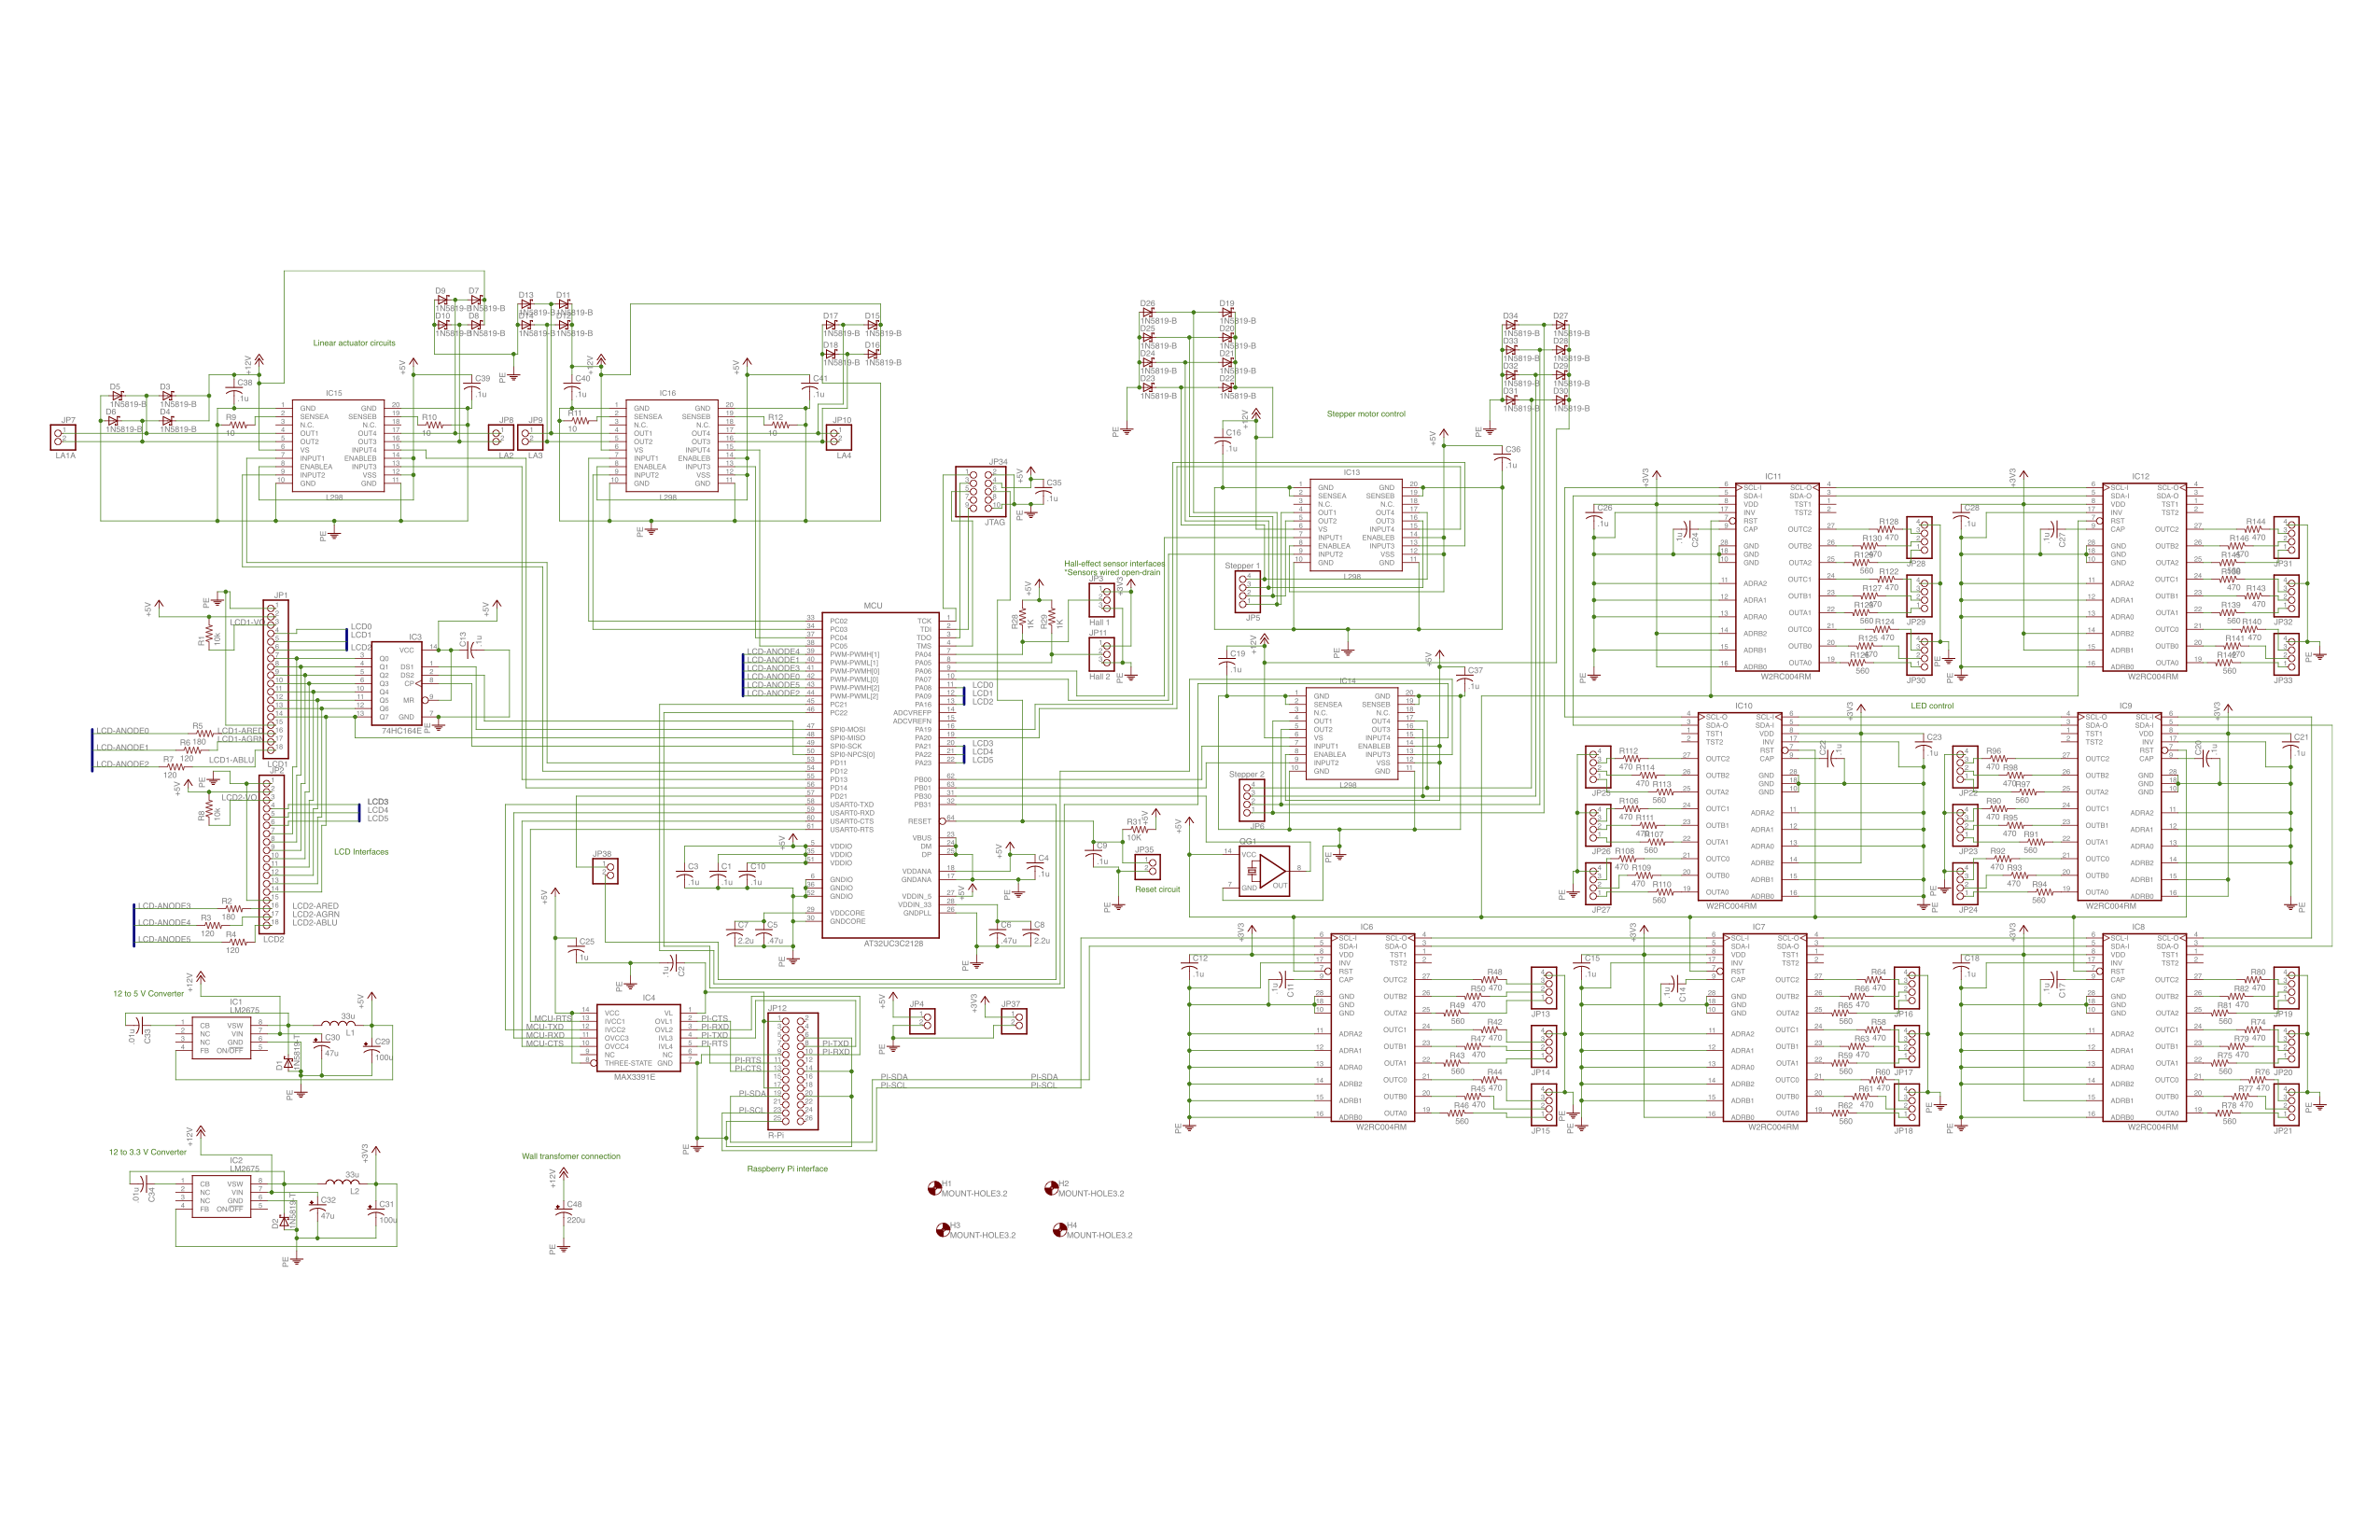 Xbox One Controller Pcb Diagram also Xbox 360 Slim Controller Outline as well Xbox 360 Game Cover Template in addition Xbox 360 Kinect Wiring Diagram furthermore Wii U Diagram. on nintendo wii wiring diagram